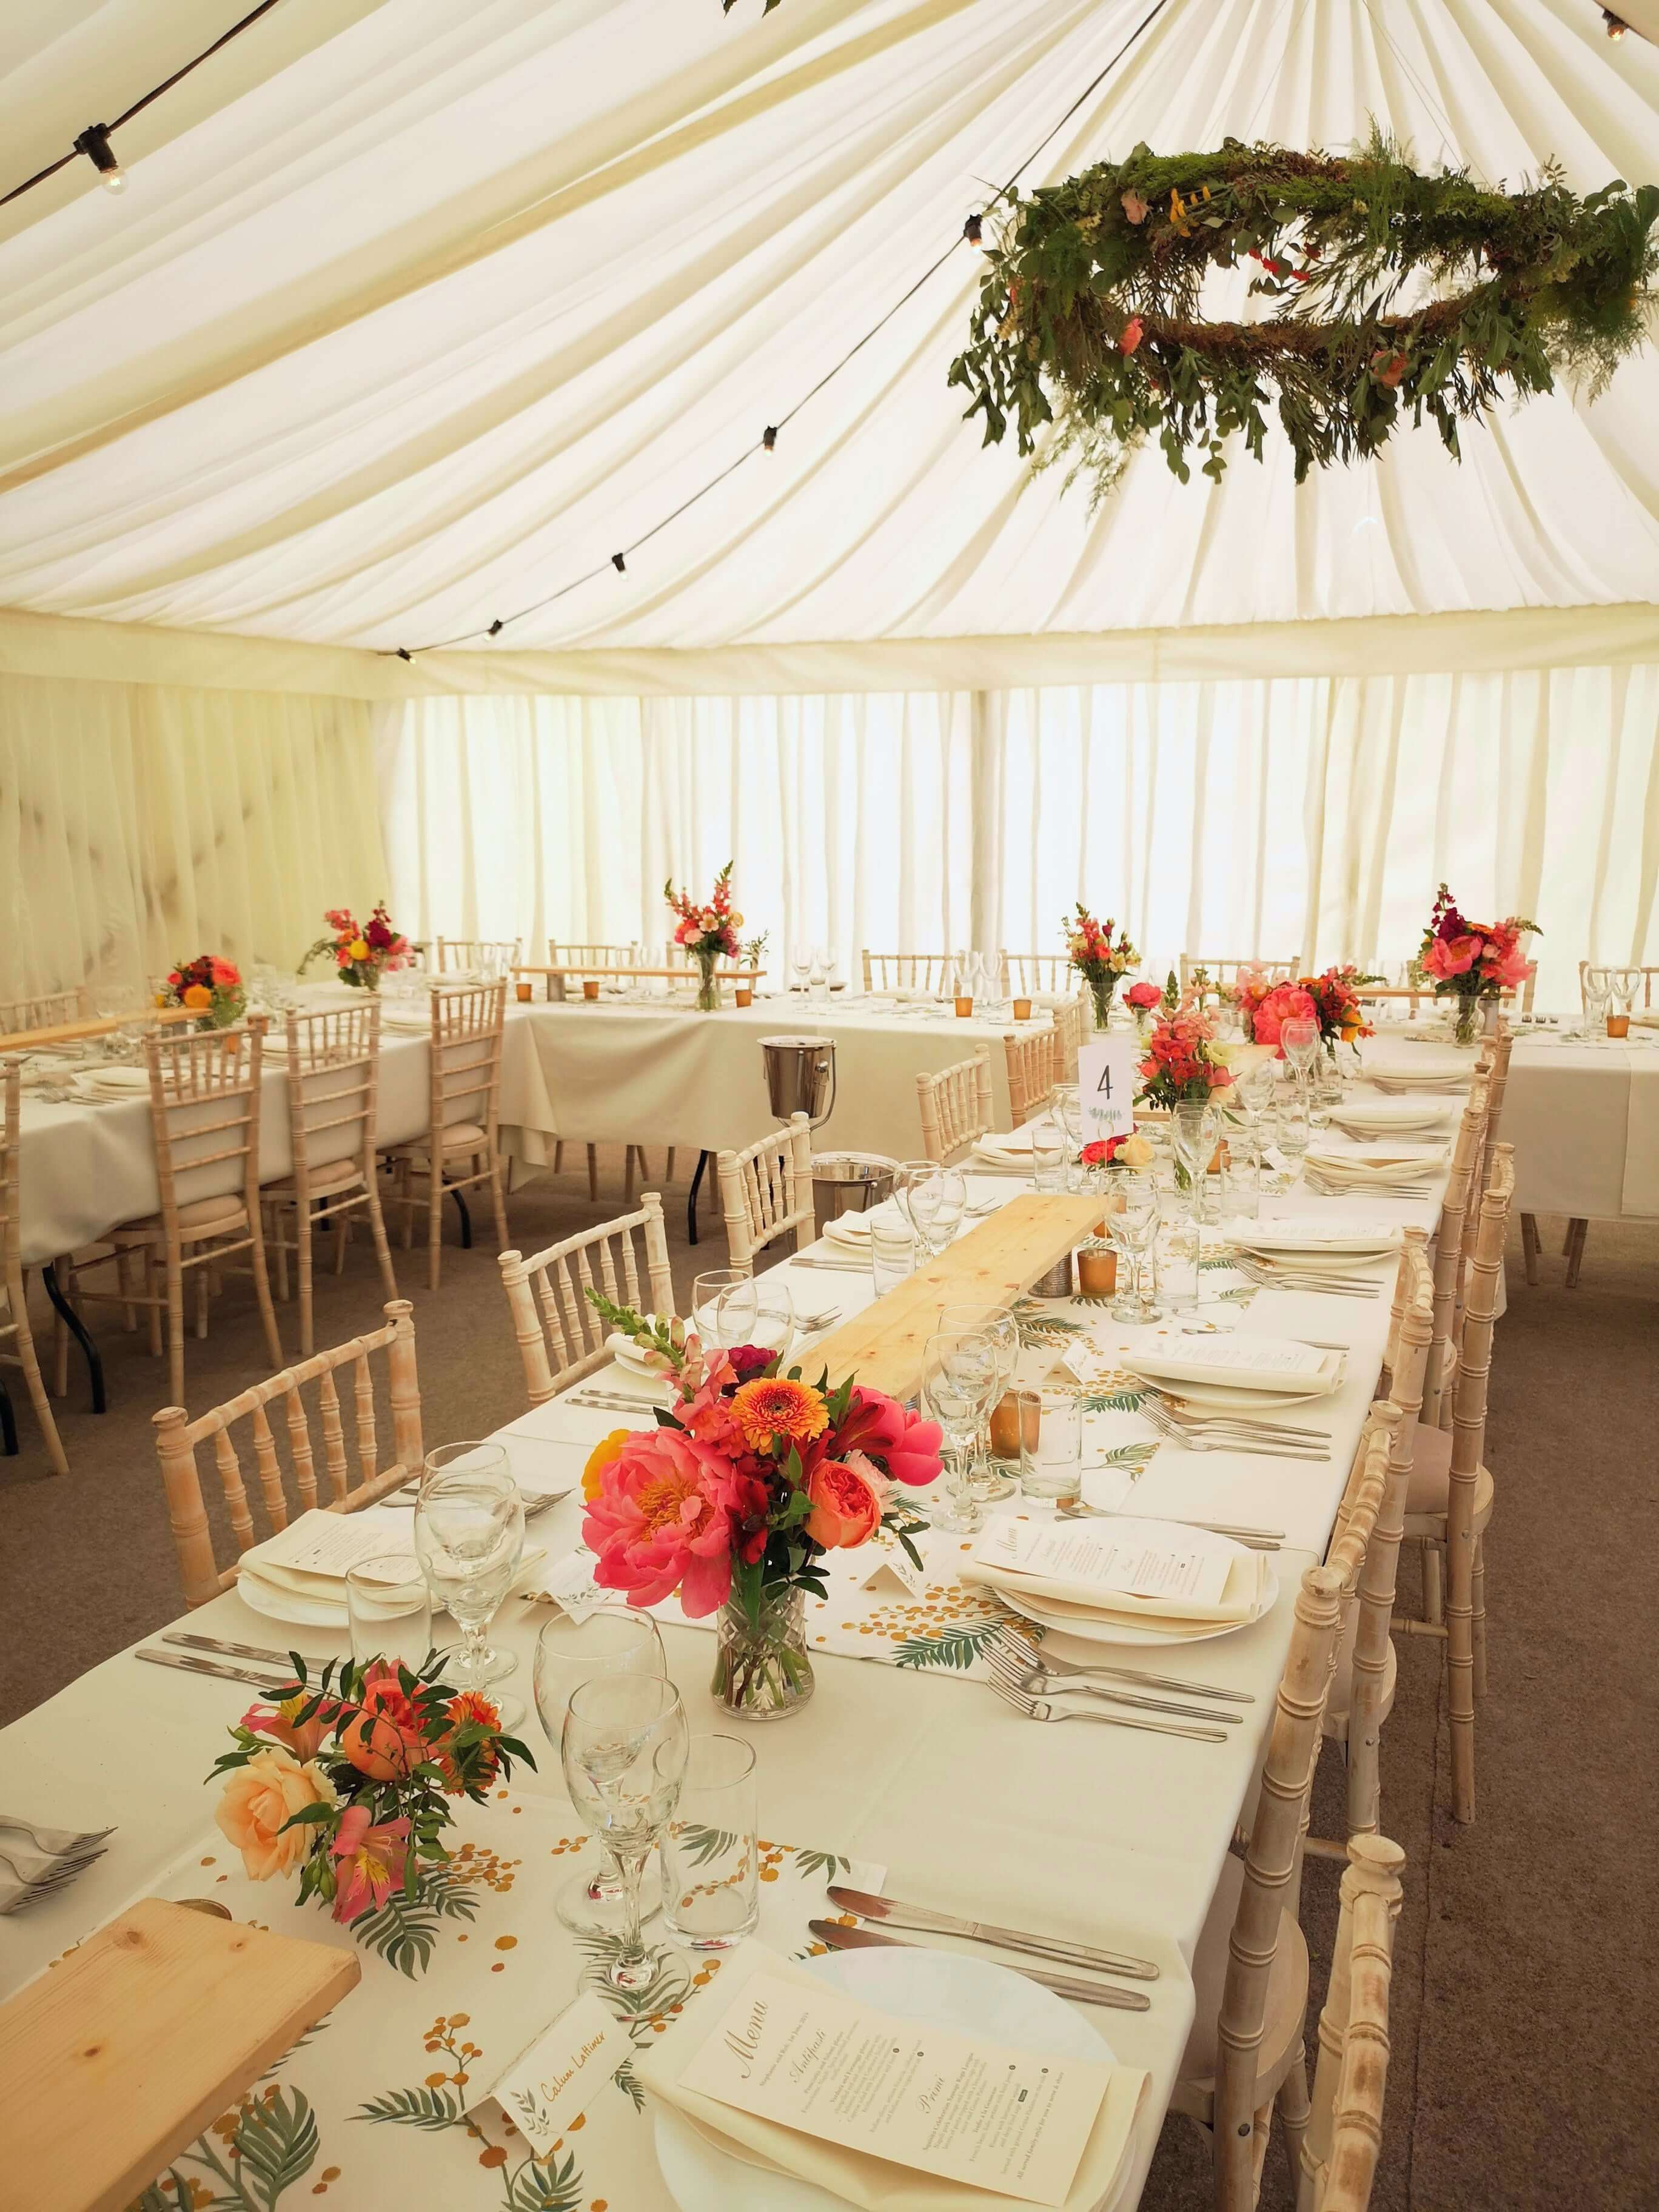 Glynde place marquee wedding with hanging floral hoops by Bettie Rose Flowers, Sussex wedding florist